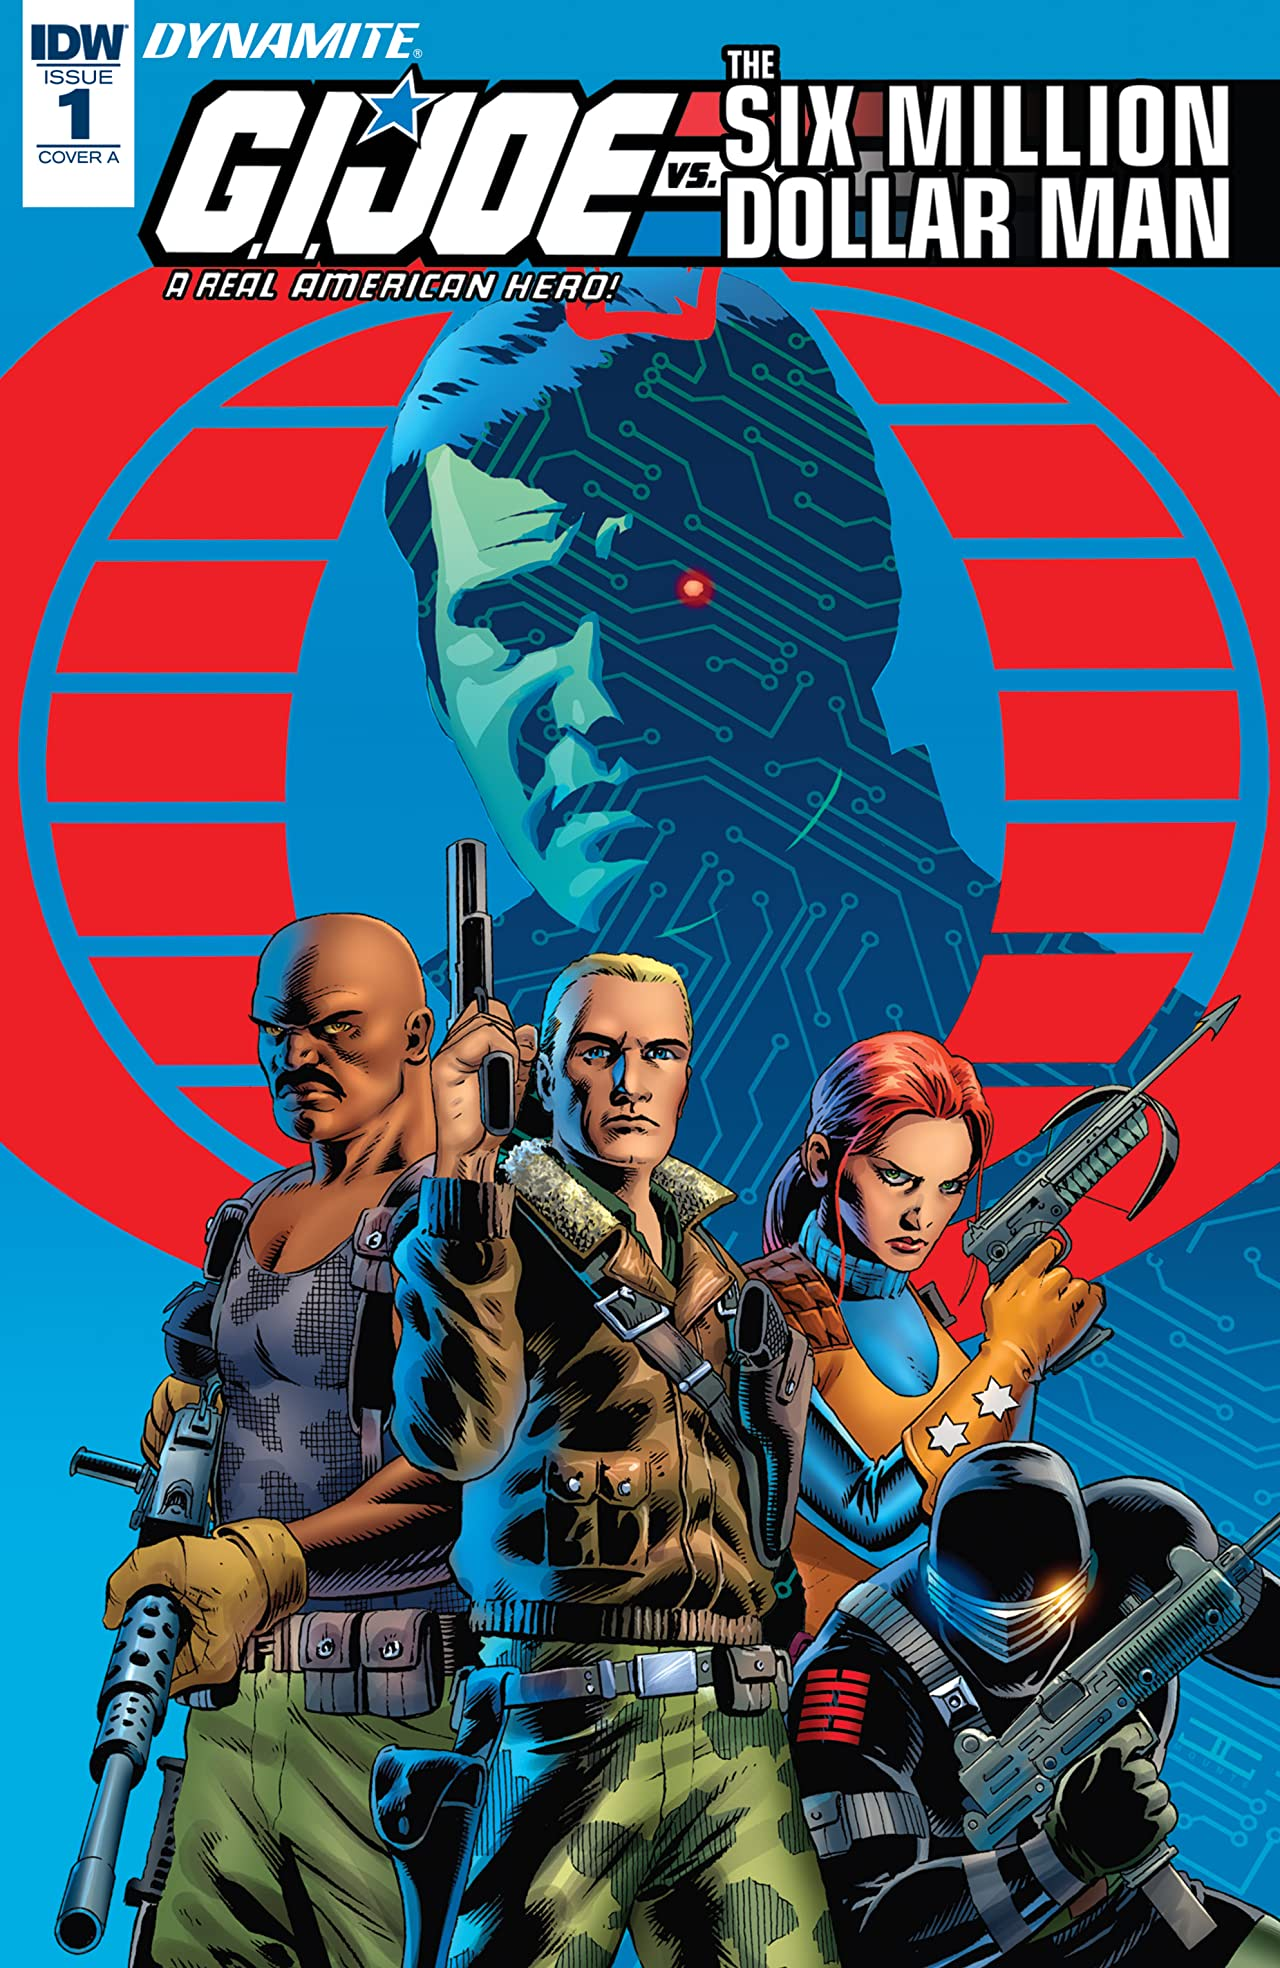 G.I. Joe: A Real American Hero vs. the Six Million Dollar Man #1